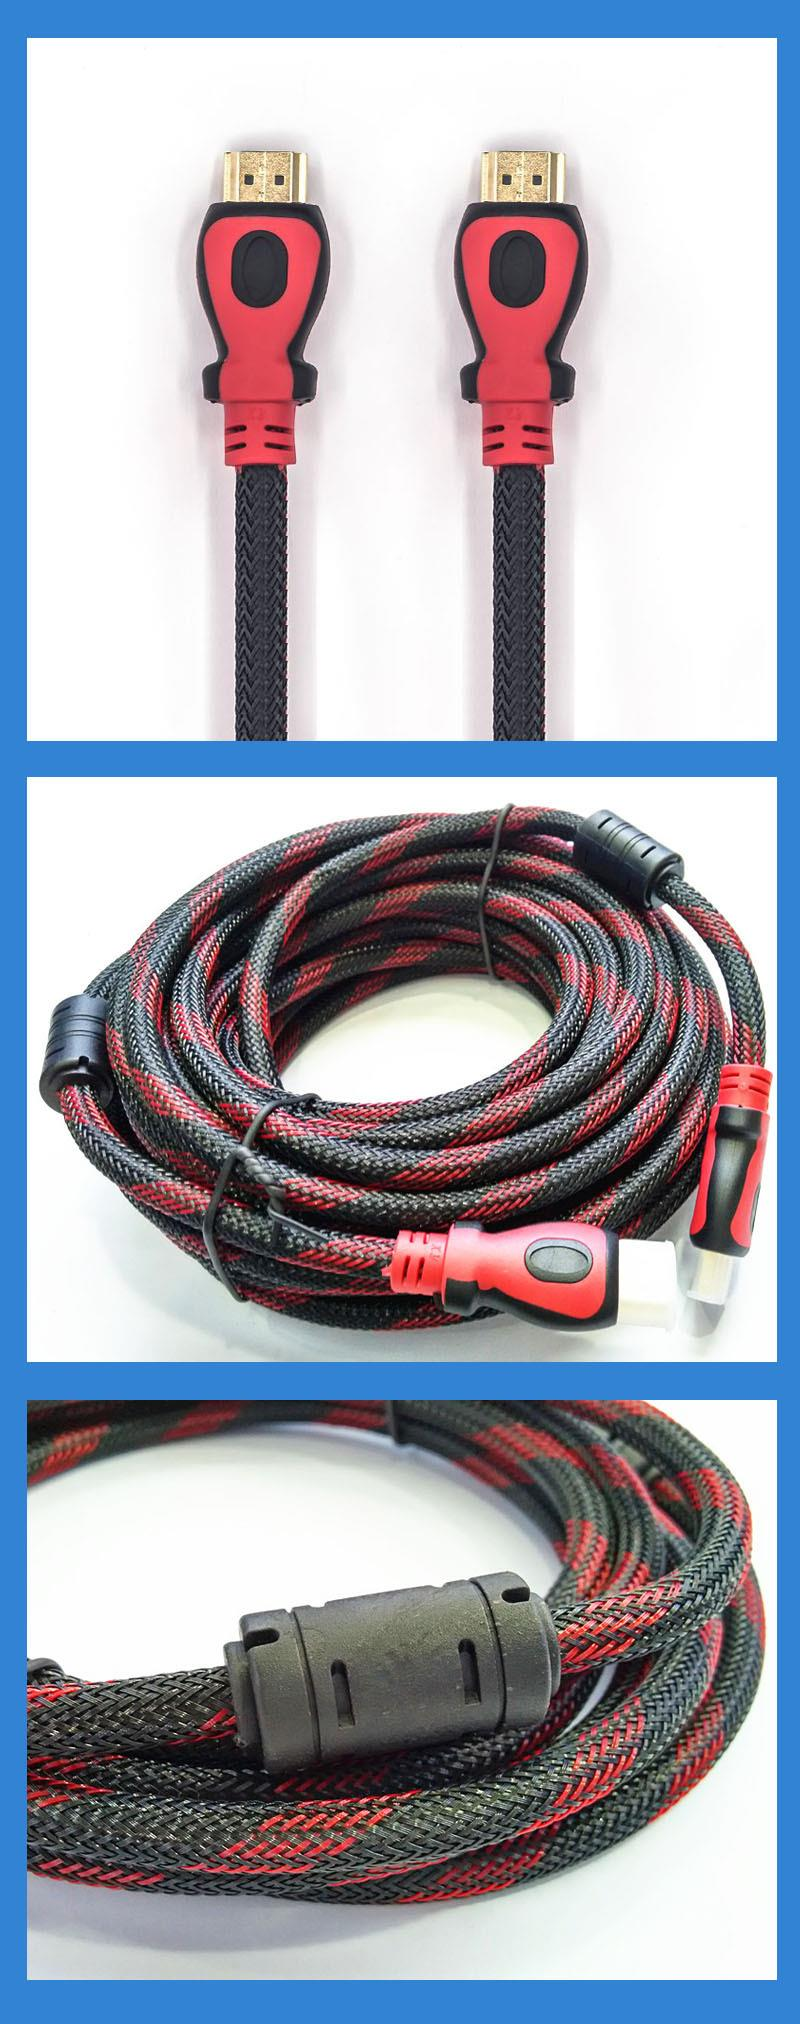 HDMI V1.4 CABLE 1.8METER